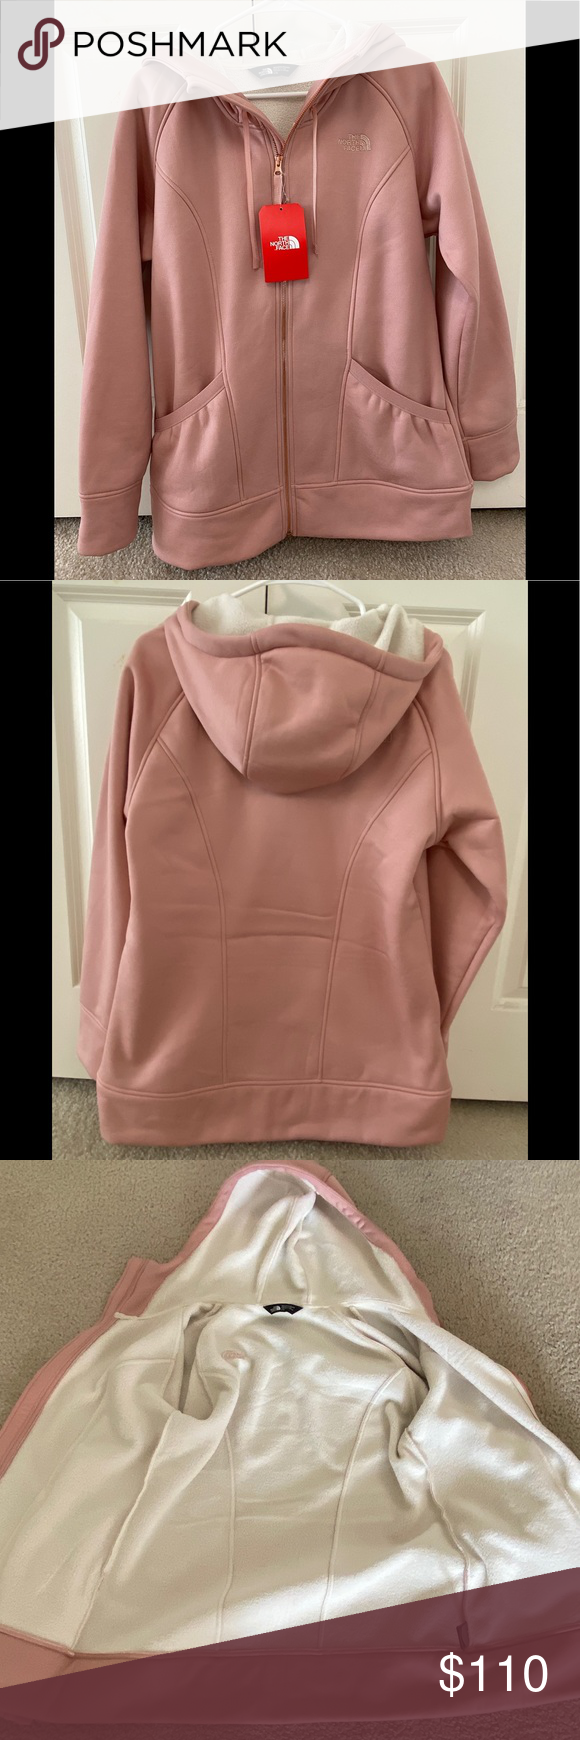 Nwt North Face Jacket Nwt North Face Jacket Front Pockets On Each Side And Inside Is Very Soft And Warm Color Is Mi North Face Jacket Clothes Design Fashion [ 1740 x 580 Pixel ]